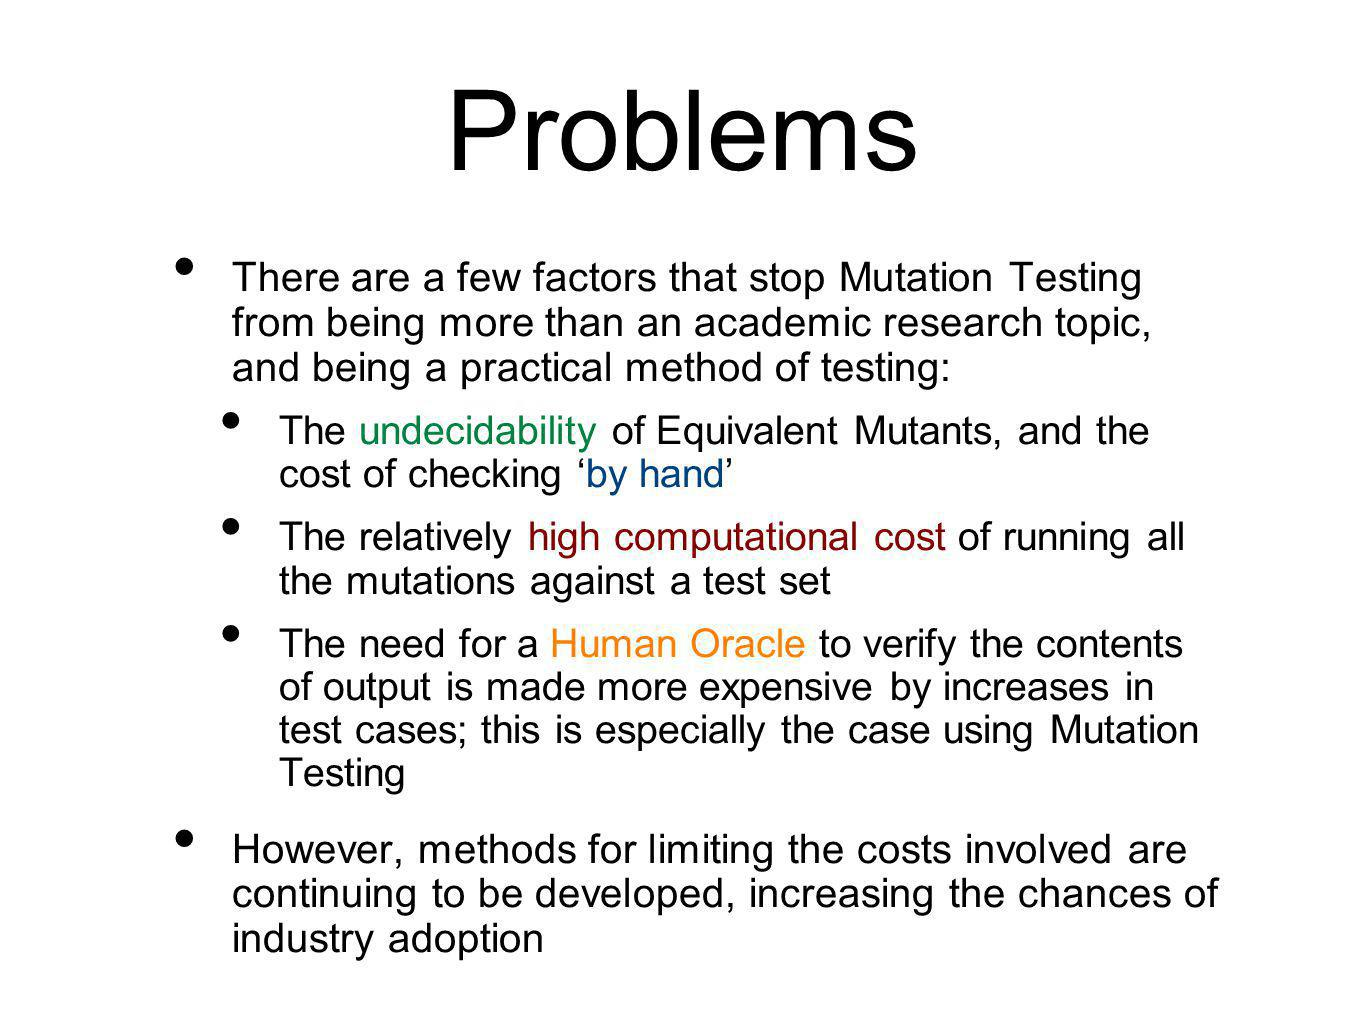 Problems There are a few factors that stop Mutation Testing from being more than an academic research topic, and being a practical method of testing: The undecidability of Equivalent Mutants, and the cost of checking 'by hand' The relatively high computational cost of running all the mutations against a test set The need for a Human Oracle to verify the contents of output is made more expensive by increases in test cases; this is especially the case using Mutation Testing However, methods for limiting the costs involved are continuing to be developed, increasing the chances of industry adoption